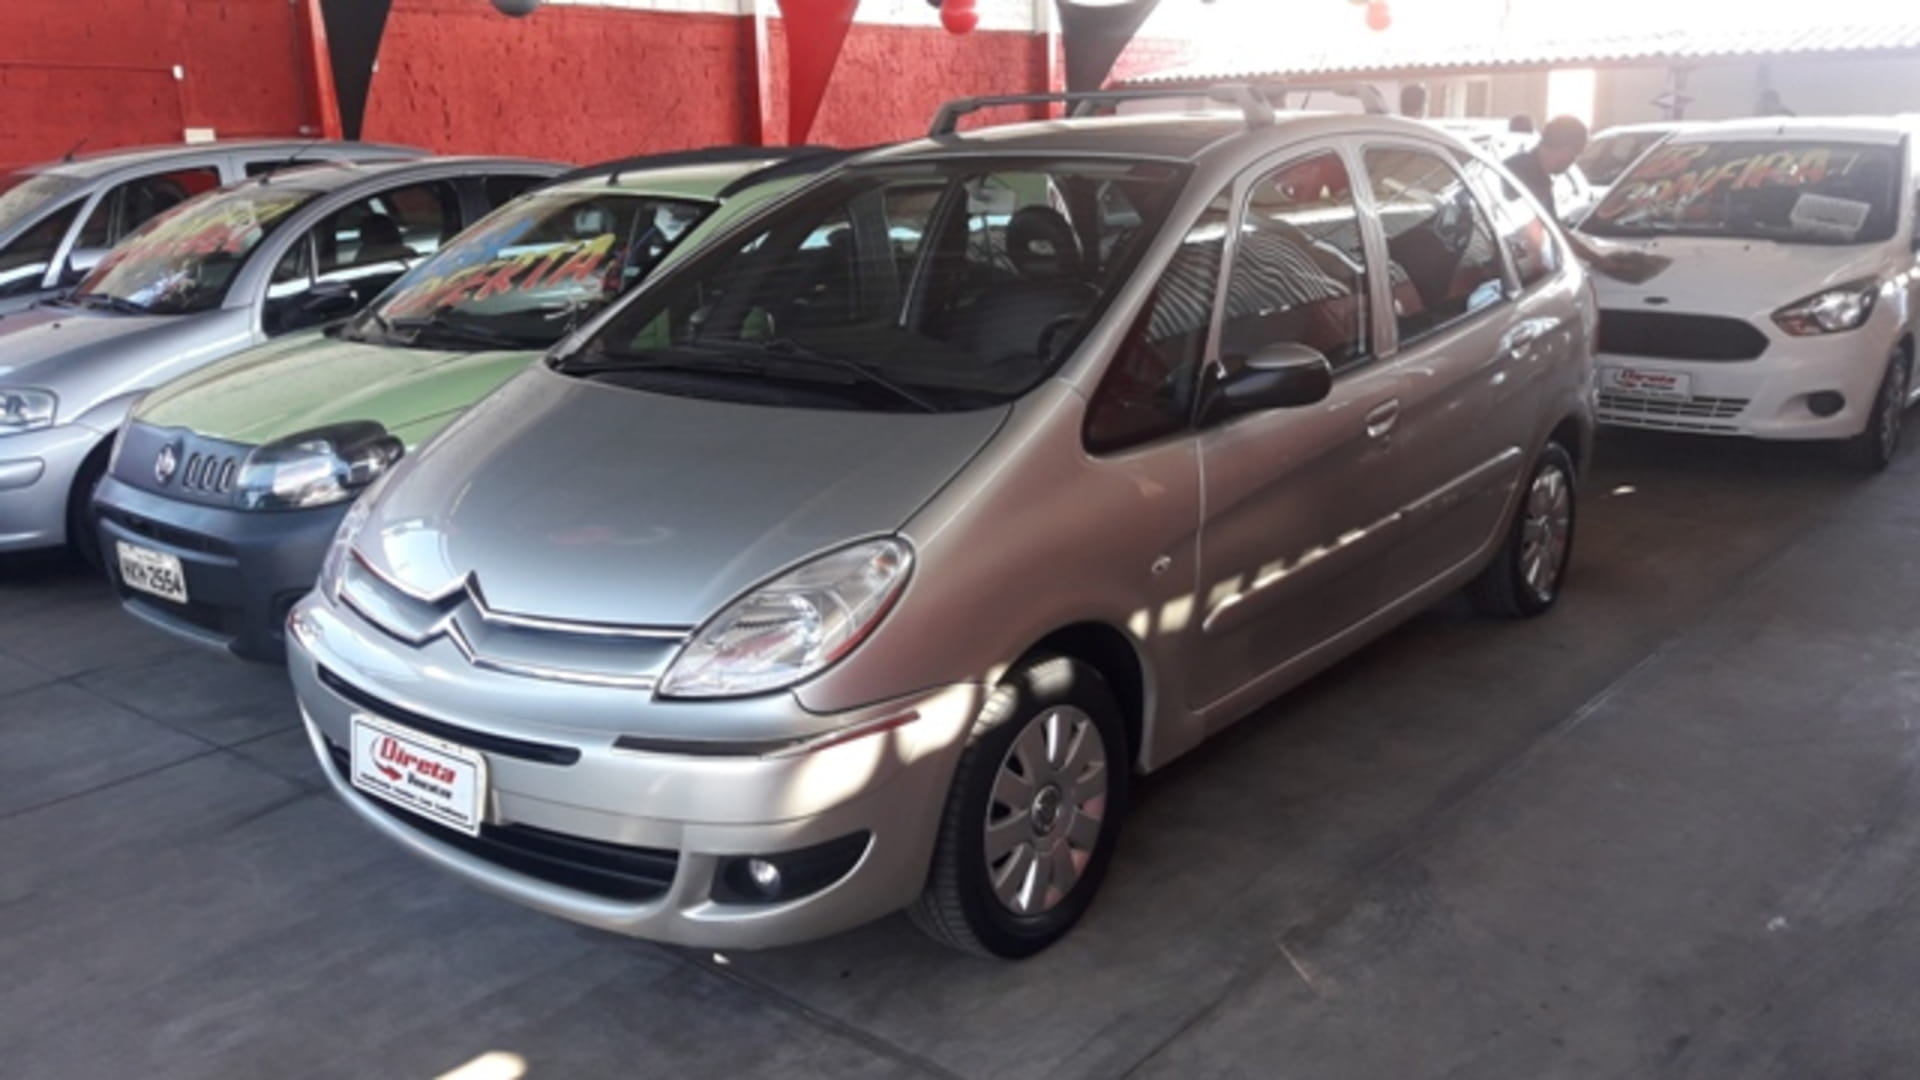 CITROEN XSARA PICASSO EXCLUSIVE 1.6 16v(Flex) 4p